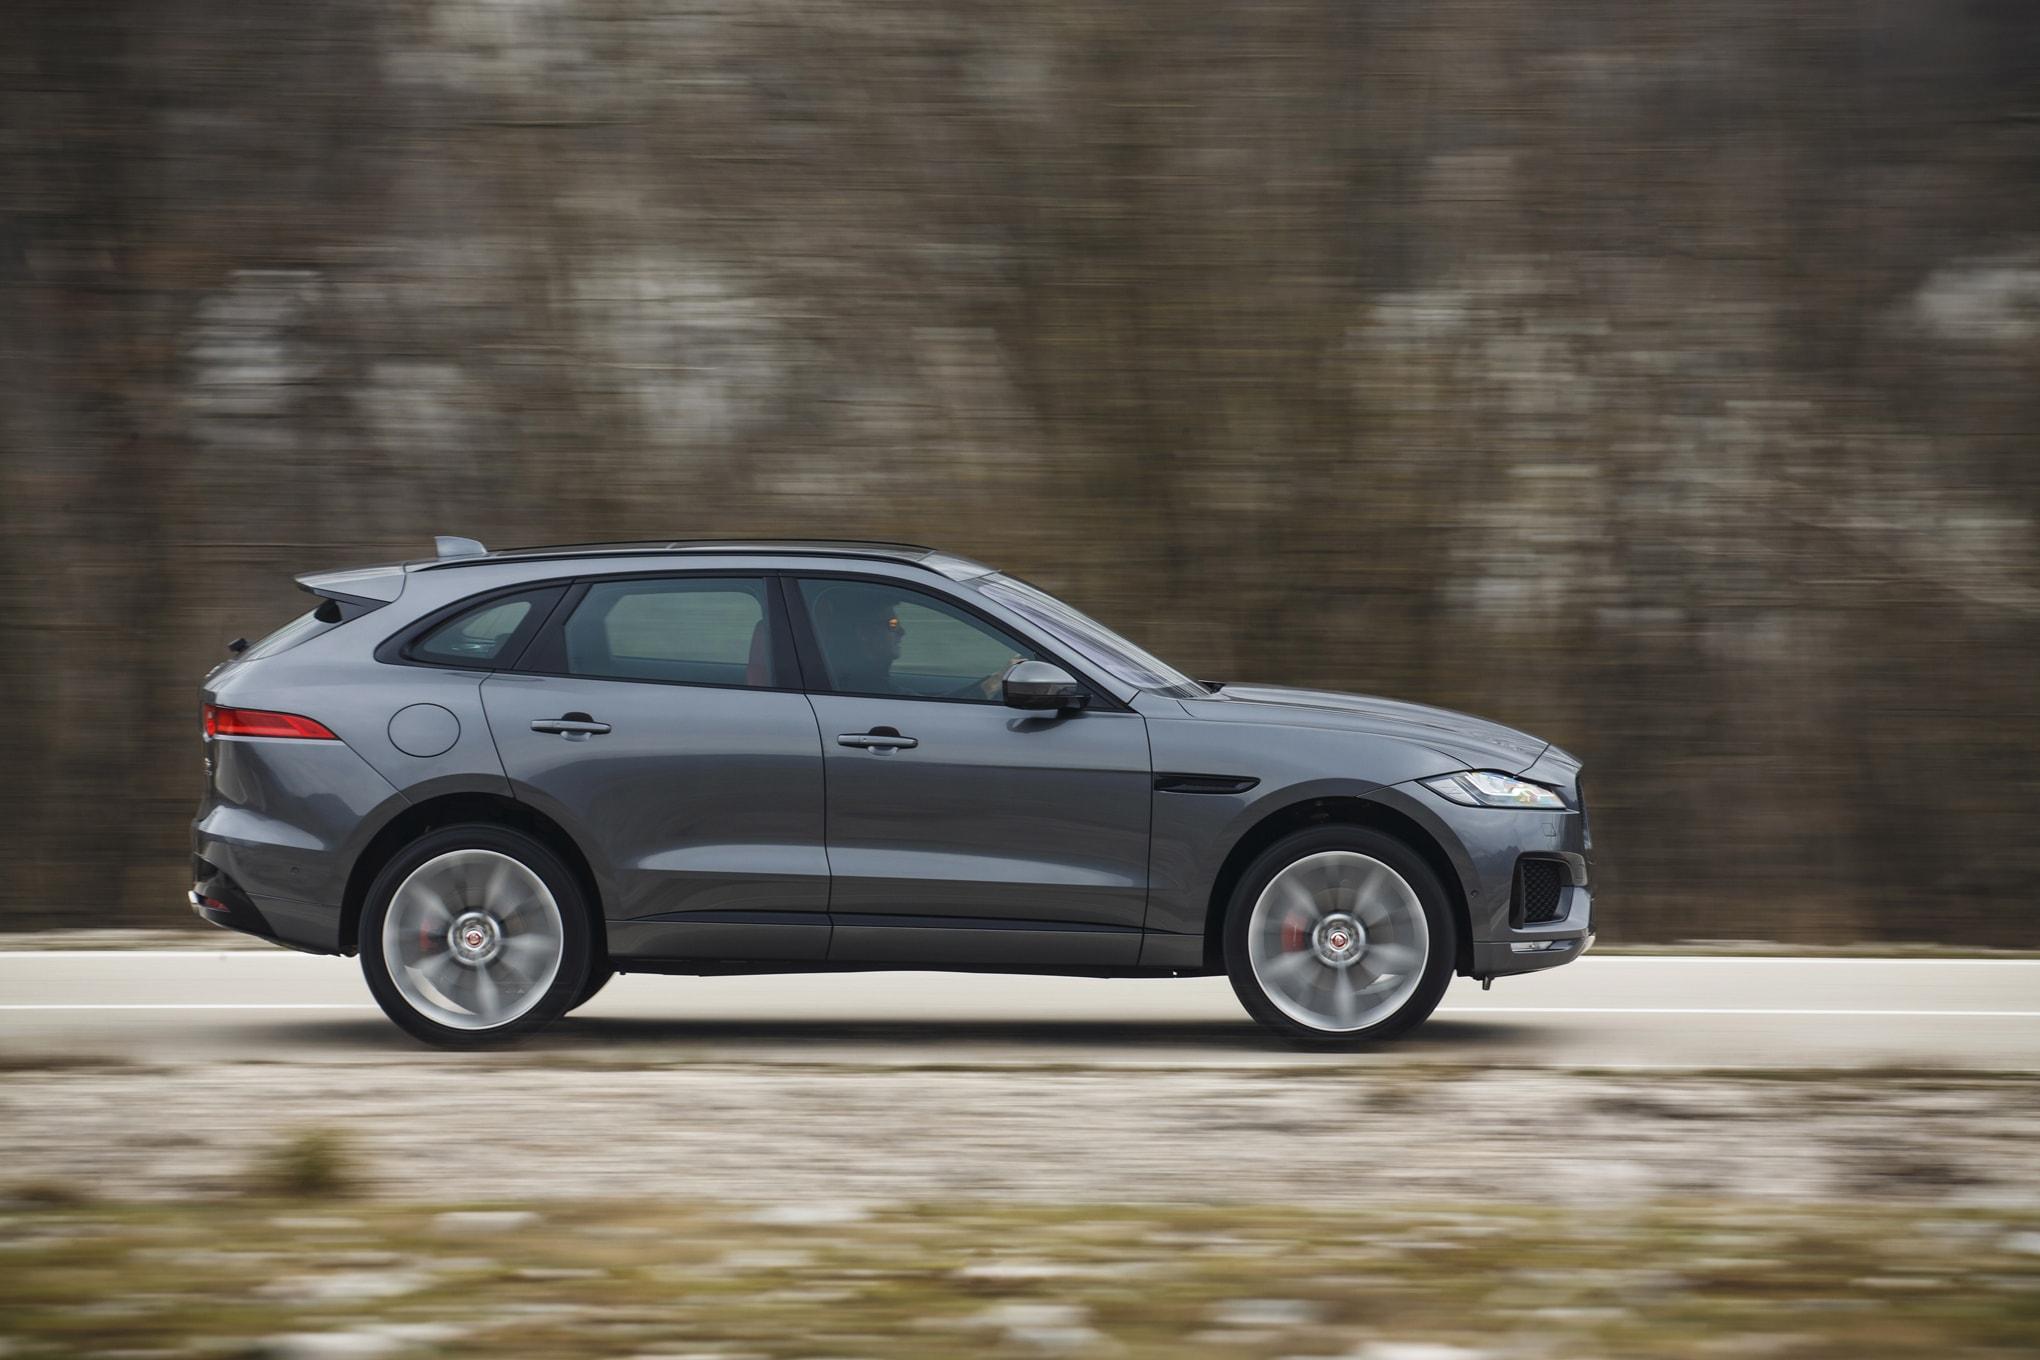 Jaguar F-Pace Download